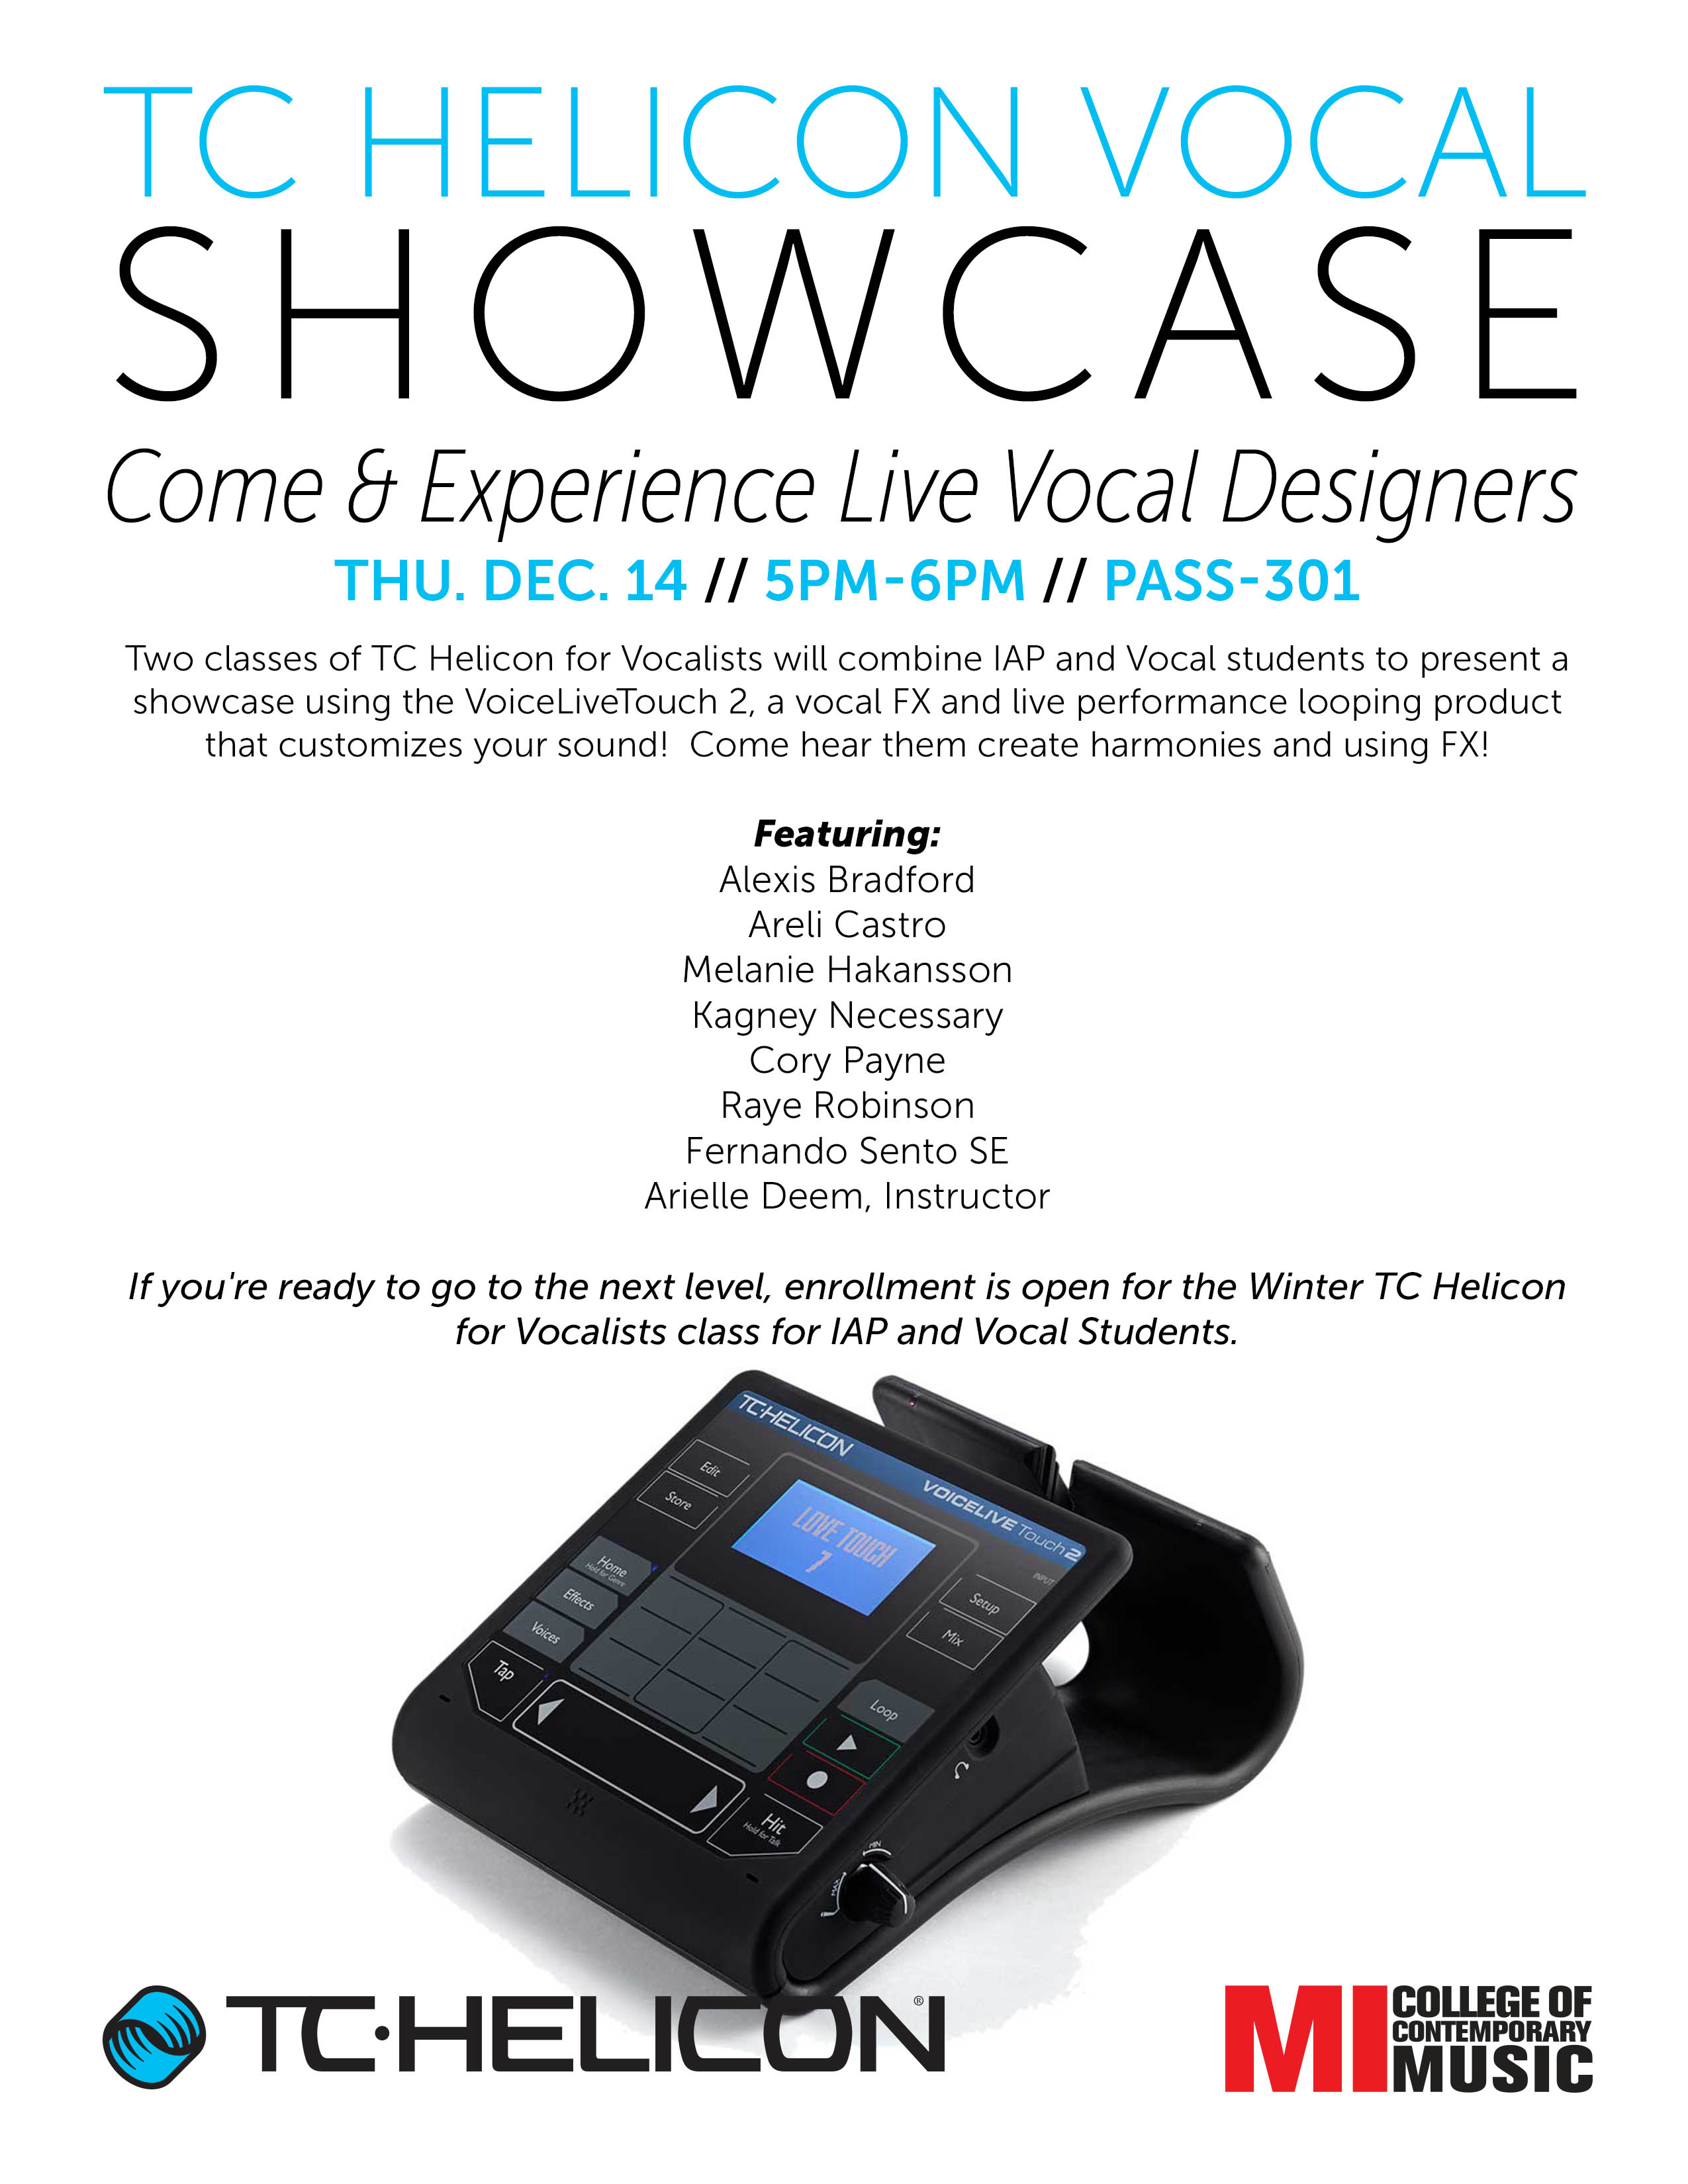 TC HELICON VOCAL SHOWCASE THURSDAY, DECEMBER 14, 2017 5-6PM